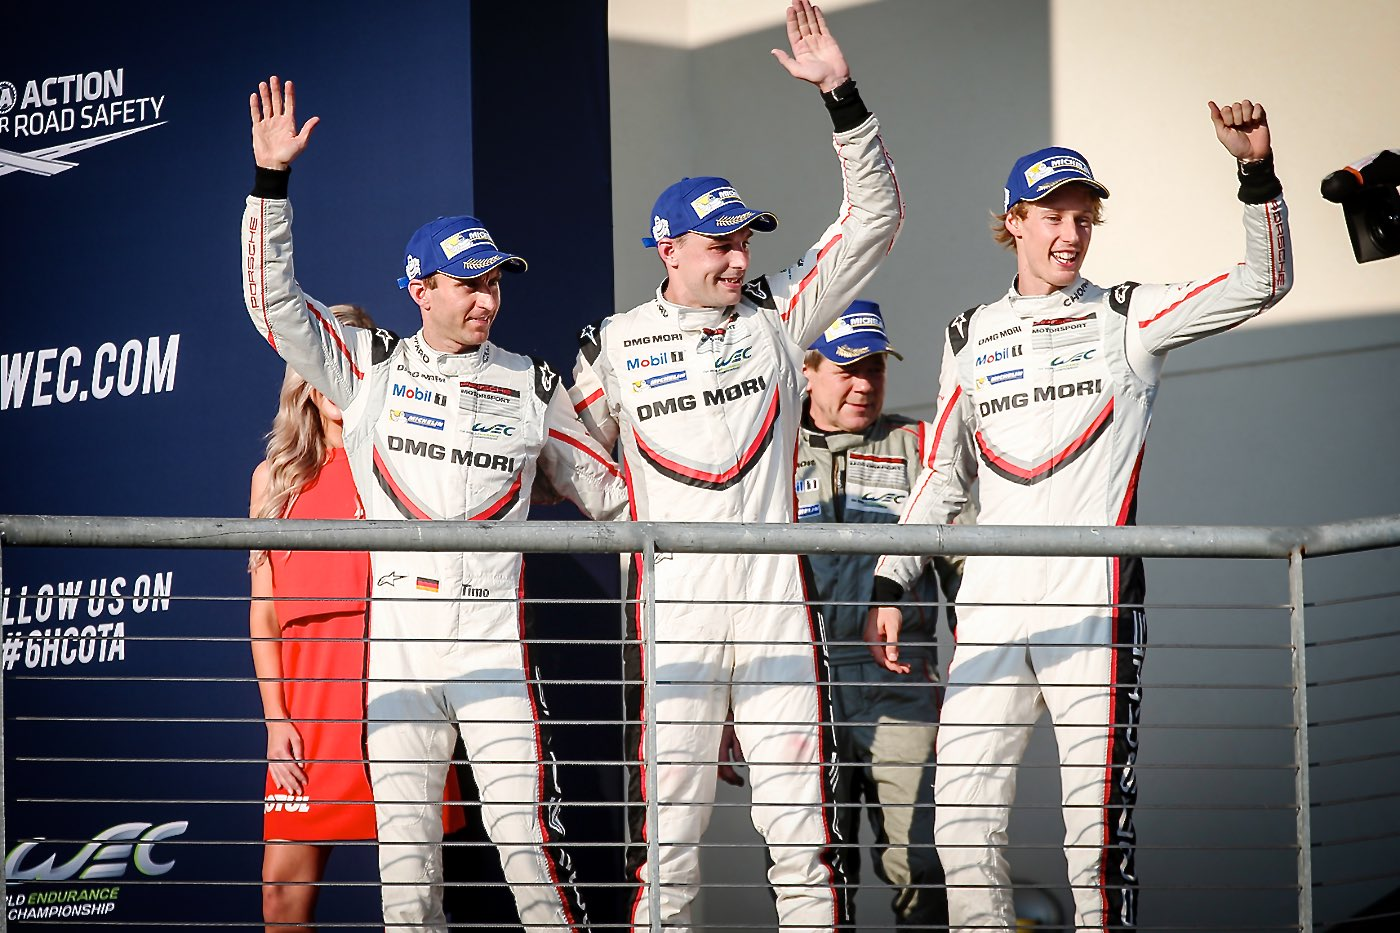 Victory for Porsche and Ferrari at COTA